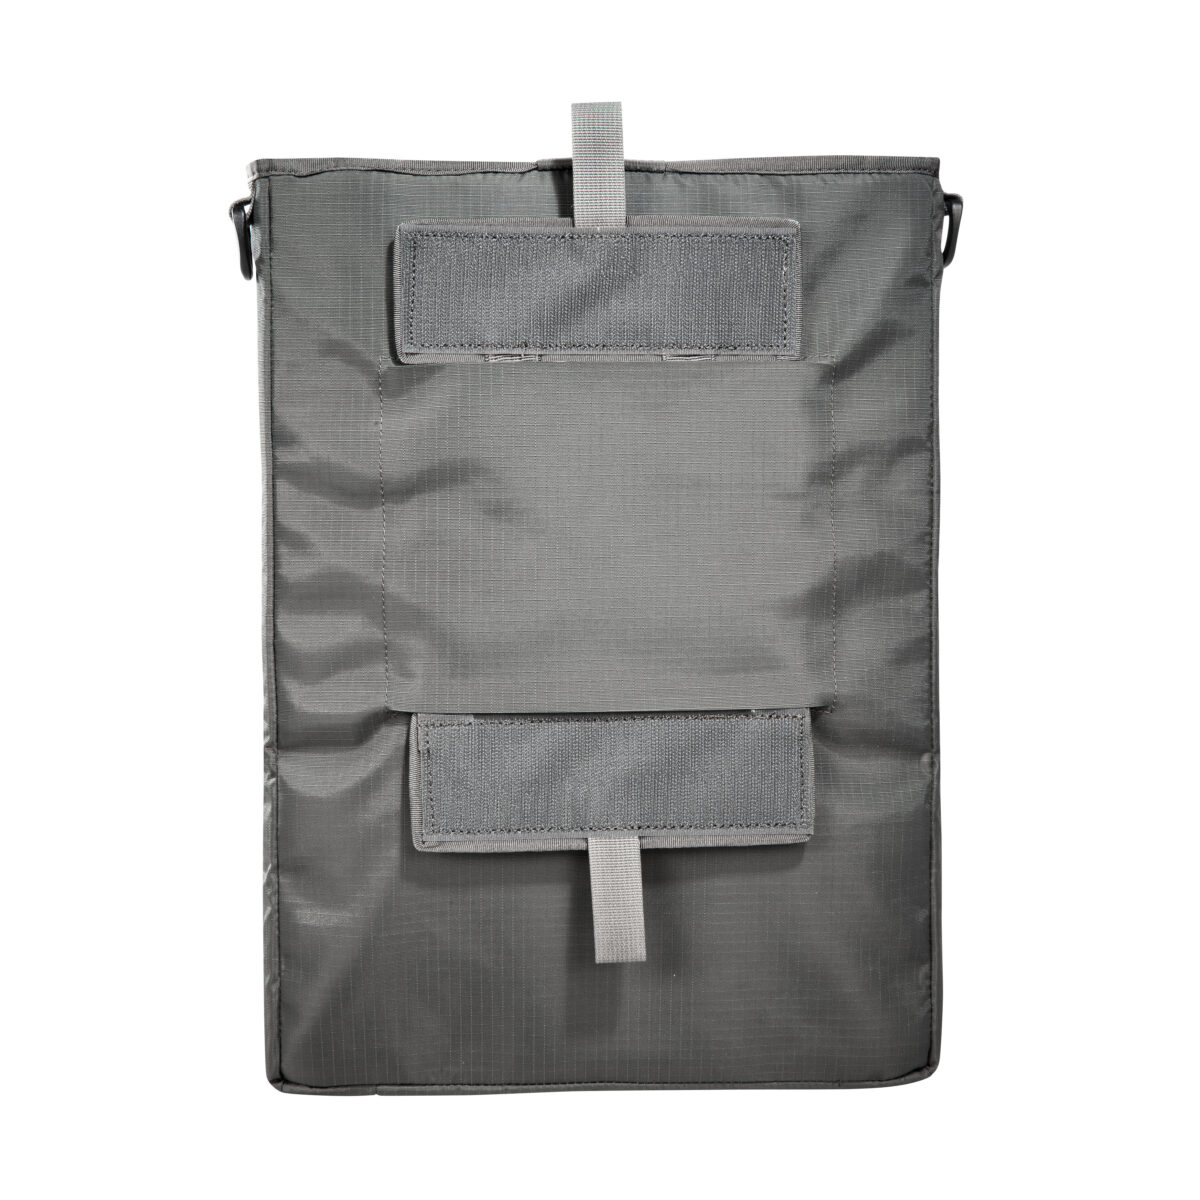 TT Modular Computer Sleeve Back View with Molle.